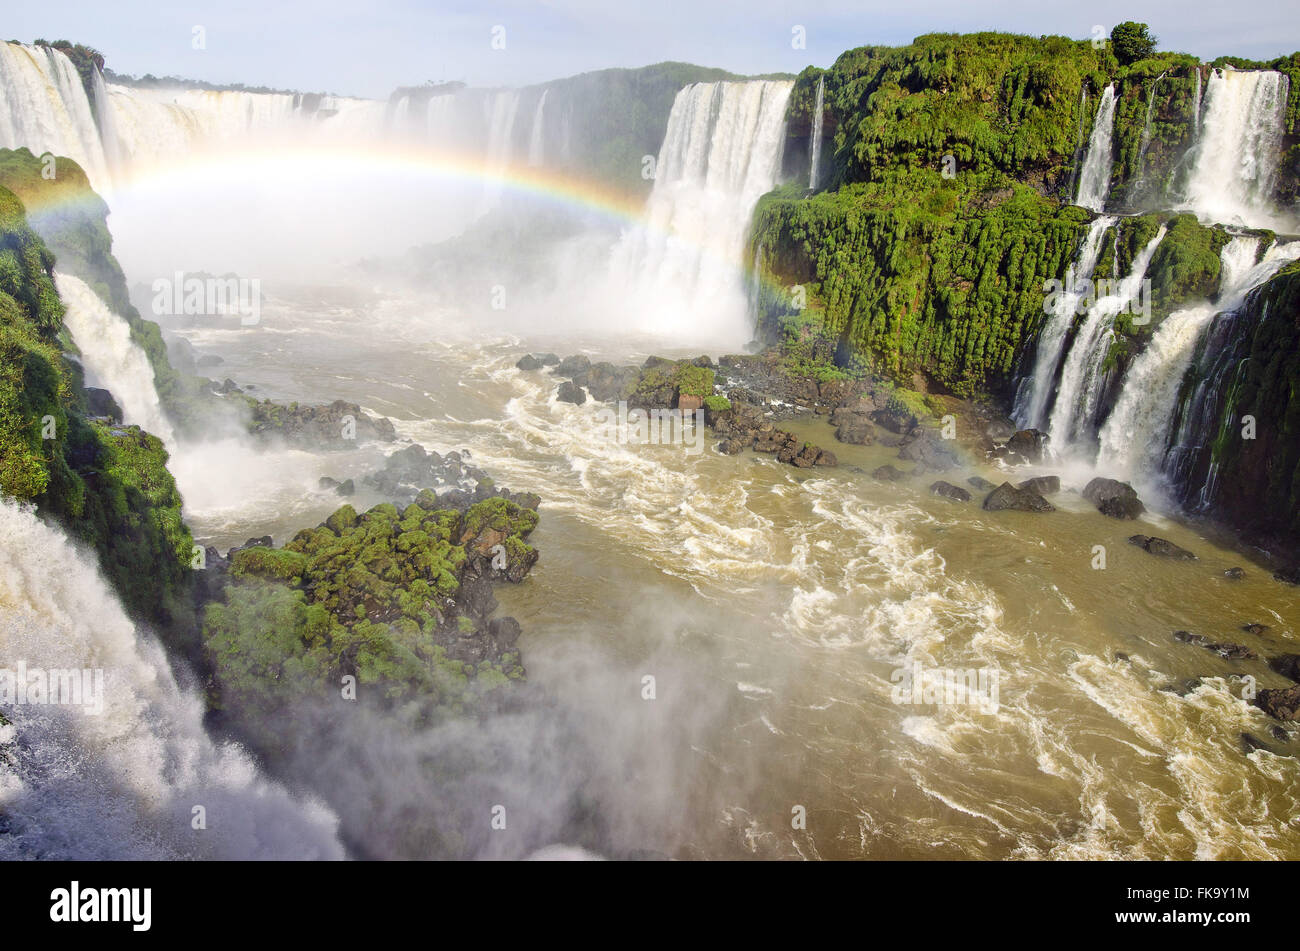 Rainbows in the Iguaçu Falls in Iguaçu National Park - Stock Image